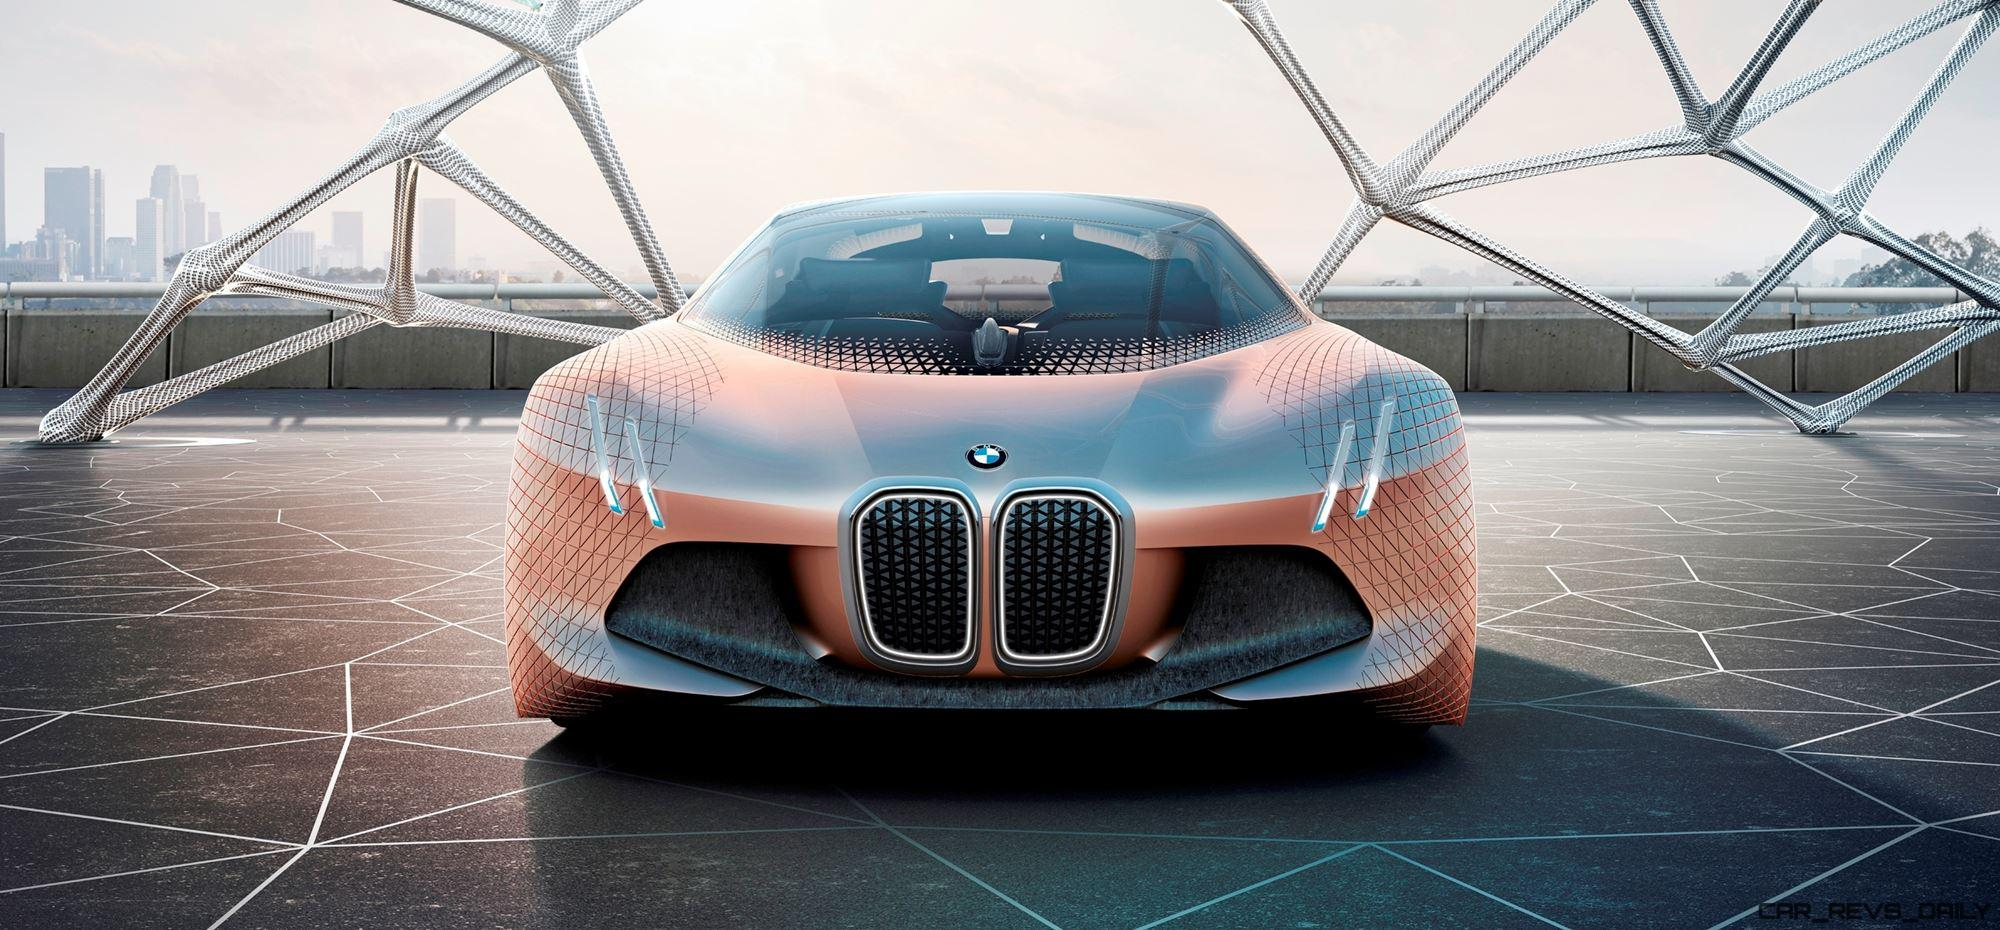 2016 bmw vision next 100 nightmare blob shows why bmw sales are tanking. Black Bedroom Furniture Sets. Home Design Ideas